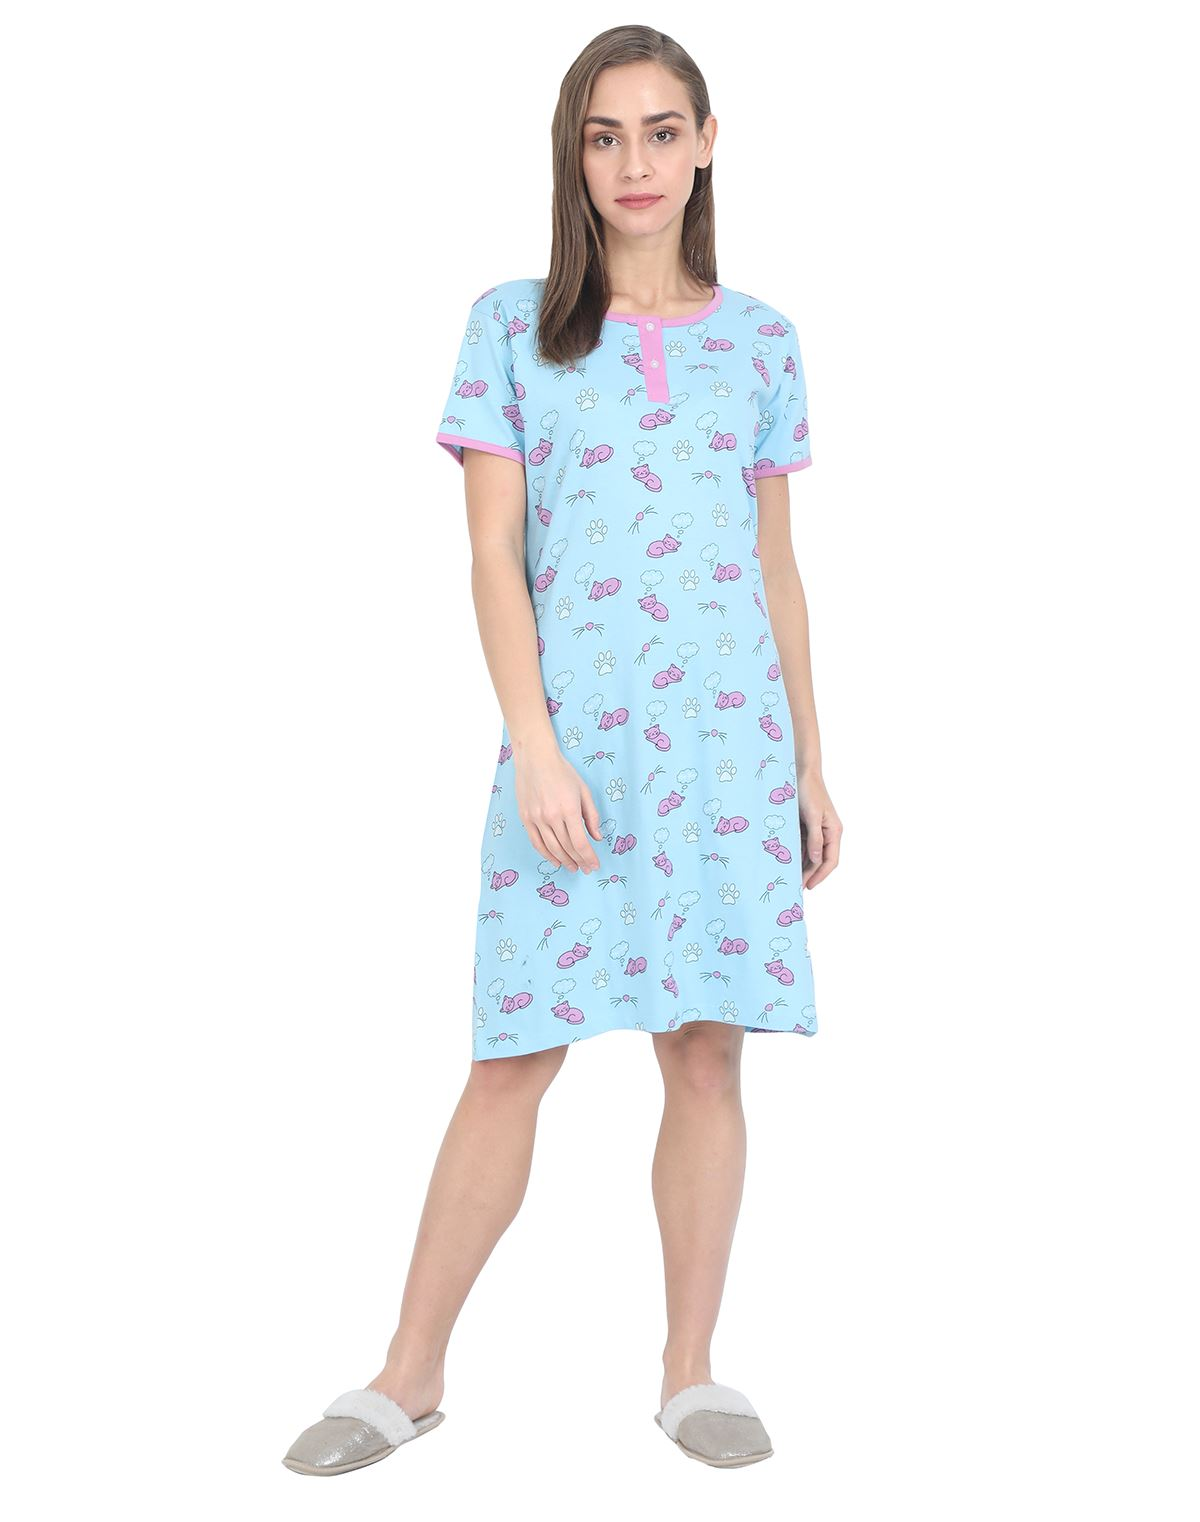 Women's Short Nightgown - 100% Cotton - Blue Womens Nightgown NH - MRS